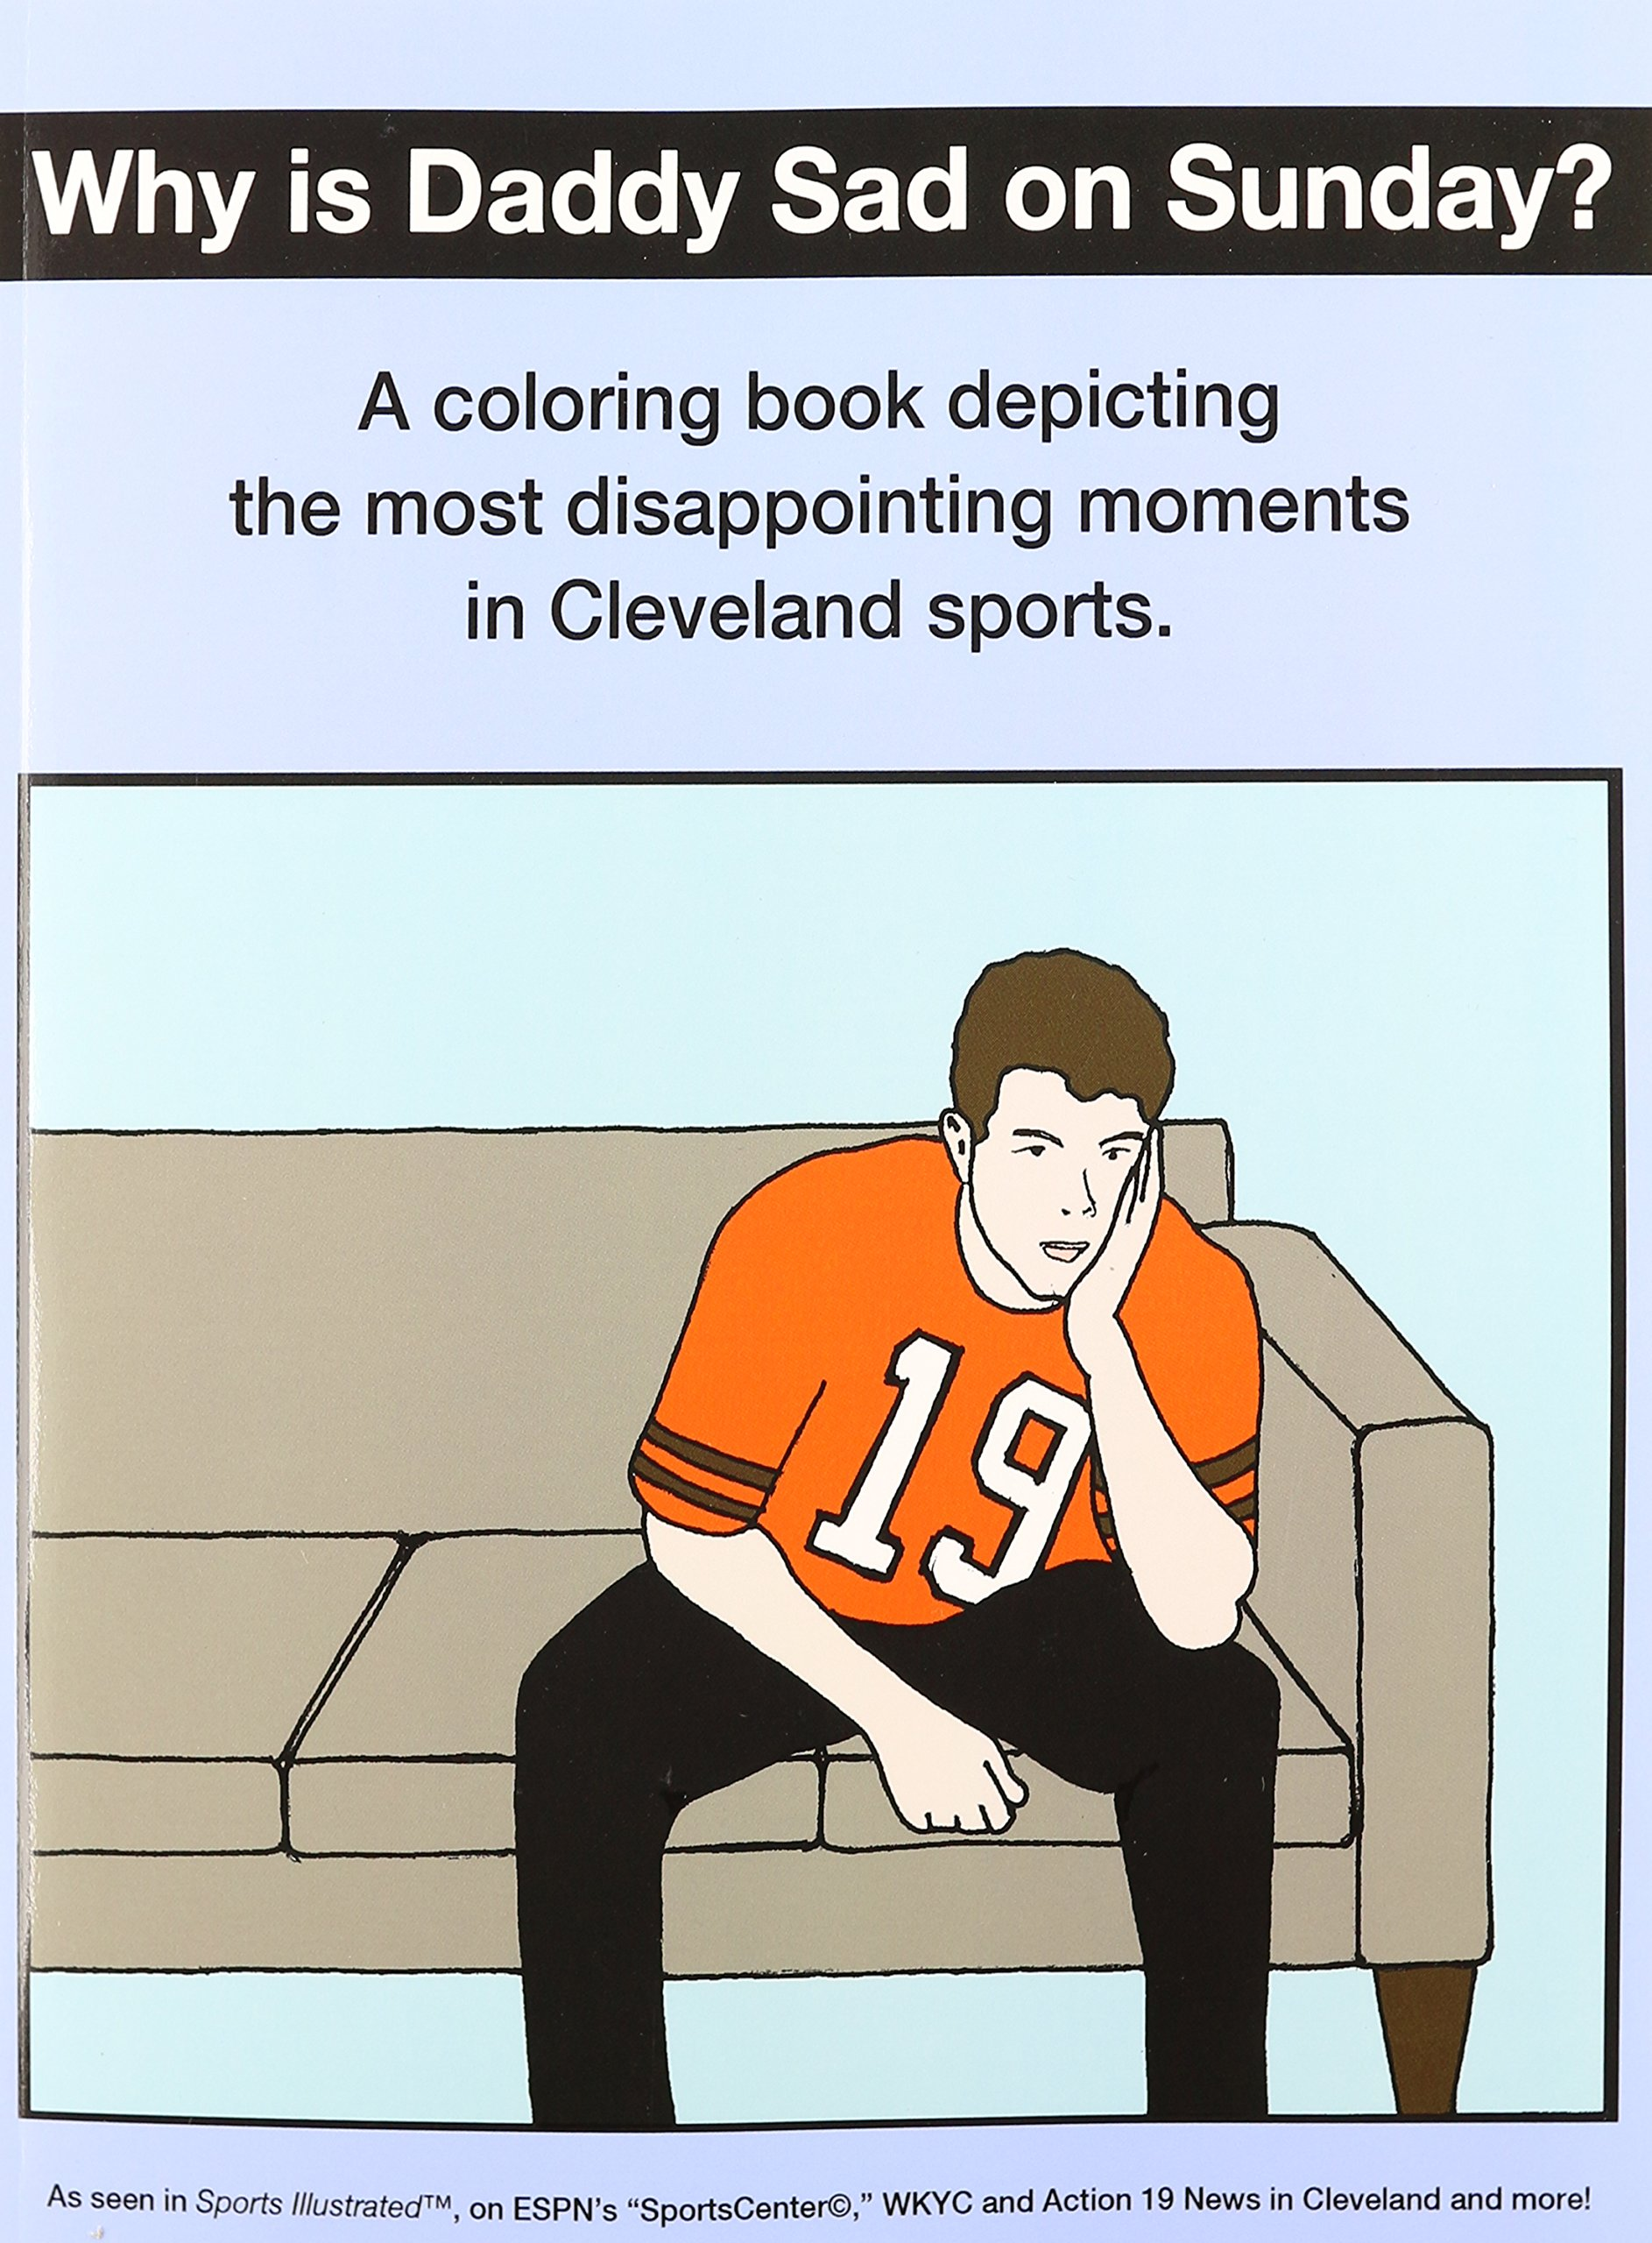 Why Is Daddy Sad on Sunday?: A Coloring Book Depicting the Most Disappointing Moments in Cleveland Sports.